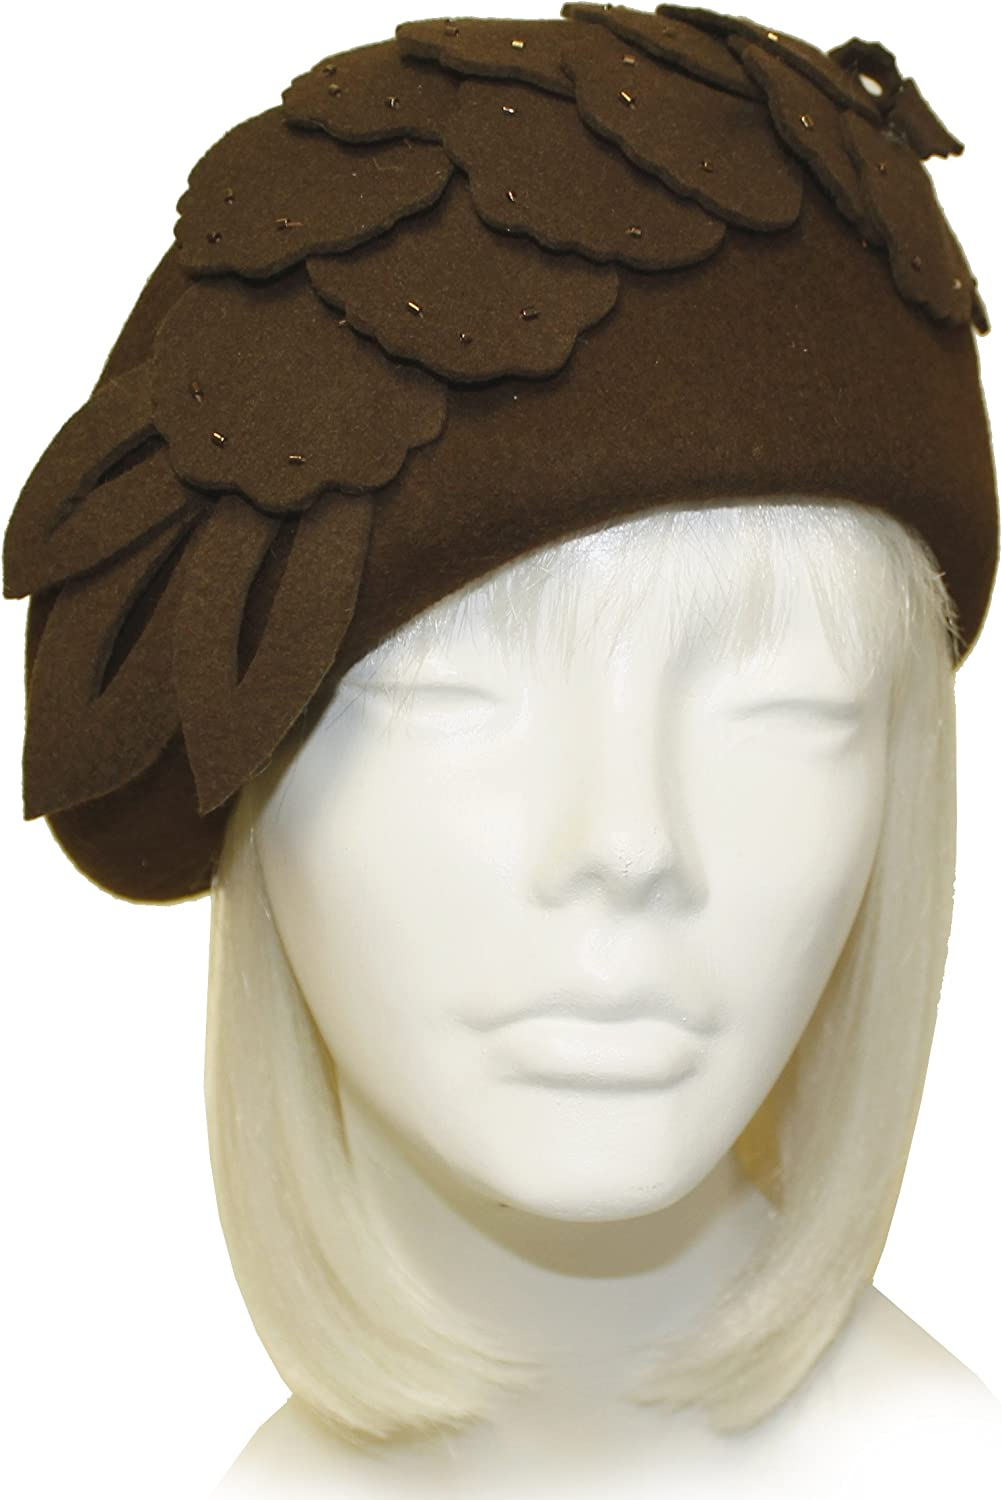 Mr. Song Millinery Felt Cloche Hat With Floral Accent  Brown FH71